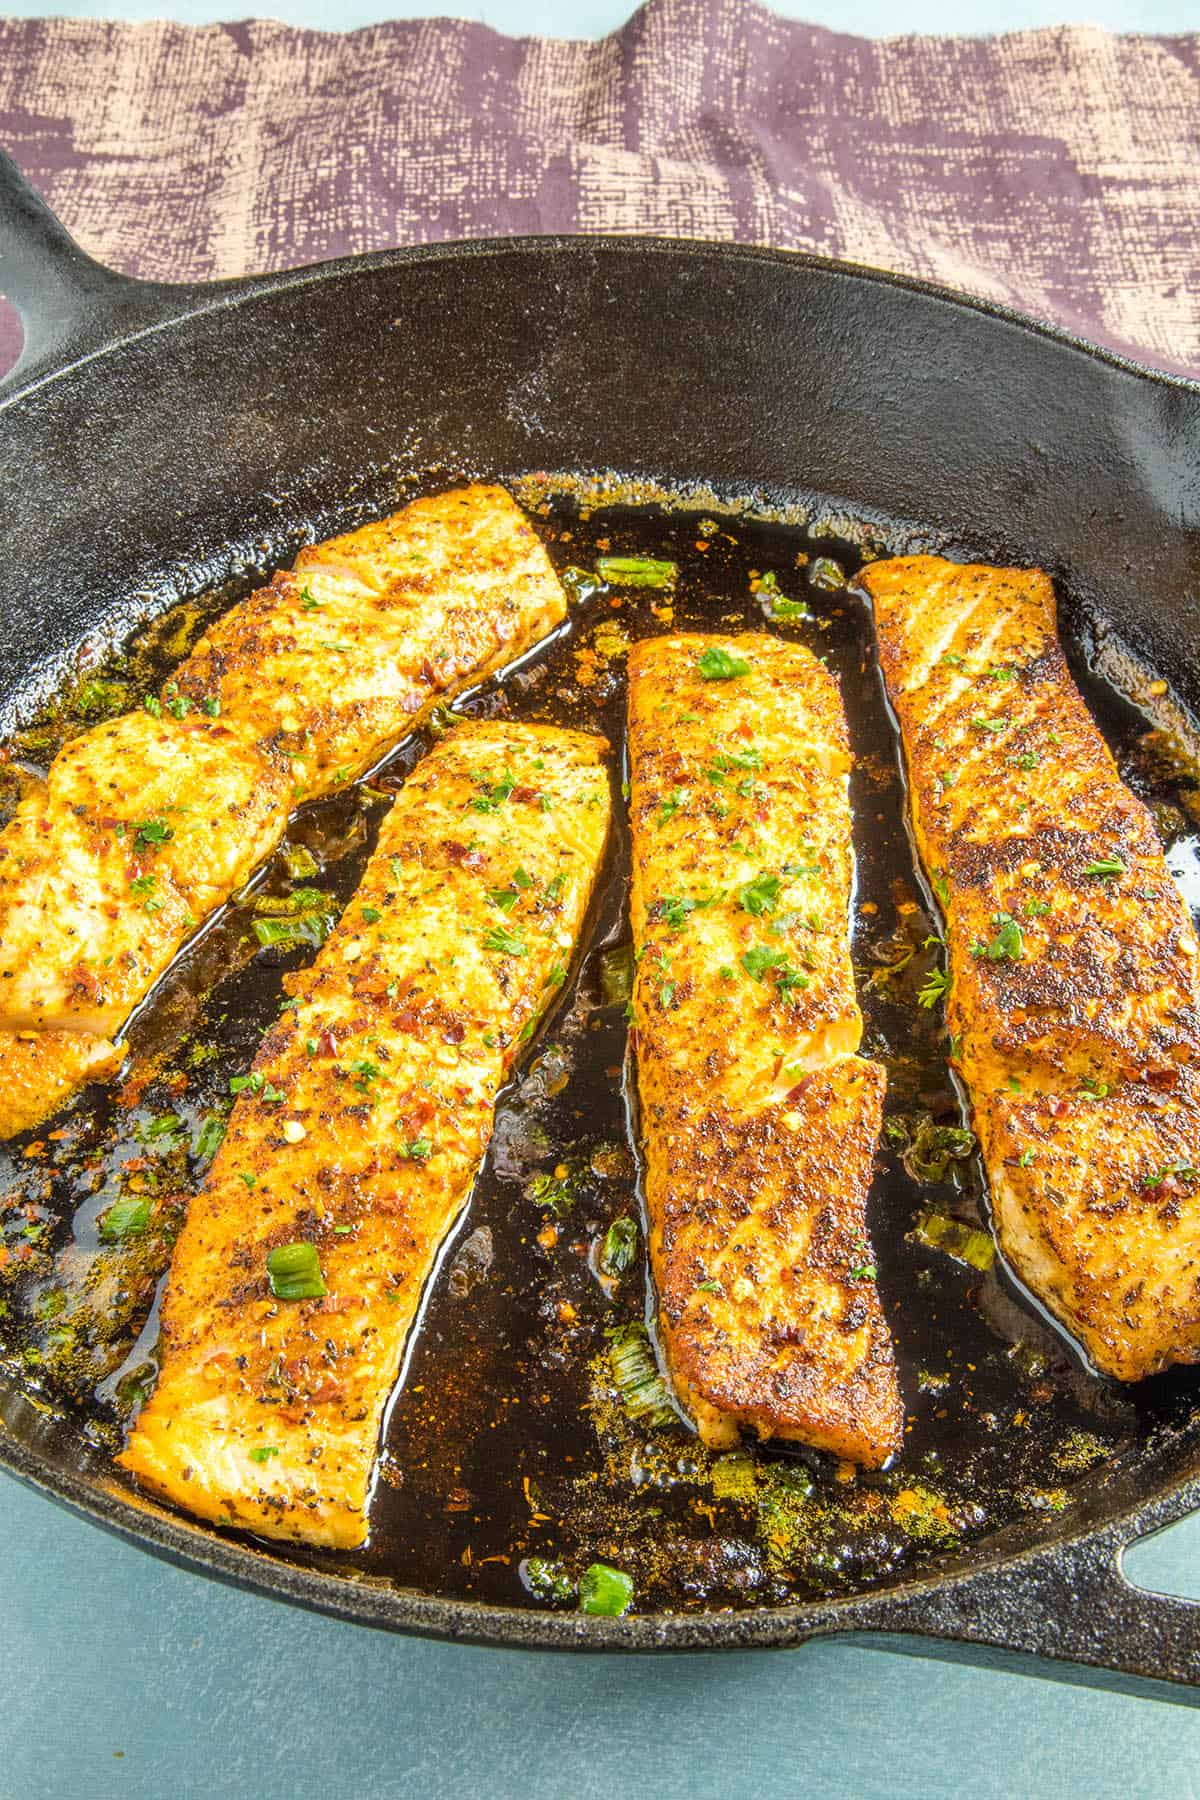 Blackened Salmon in a pan with garnish